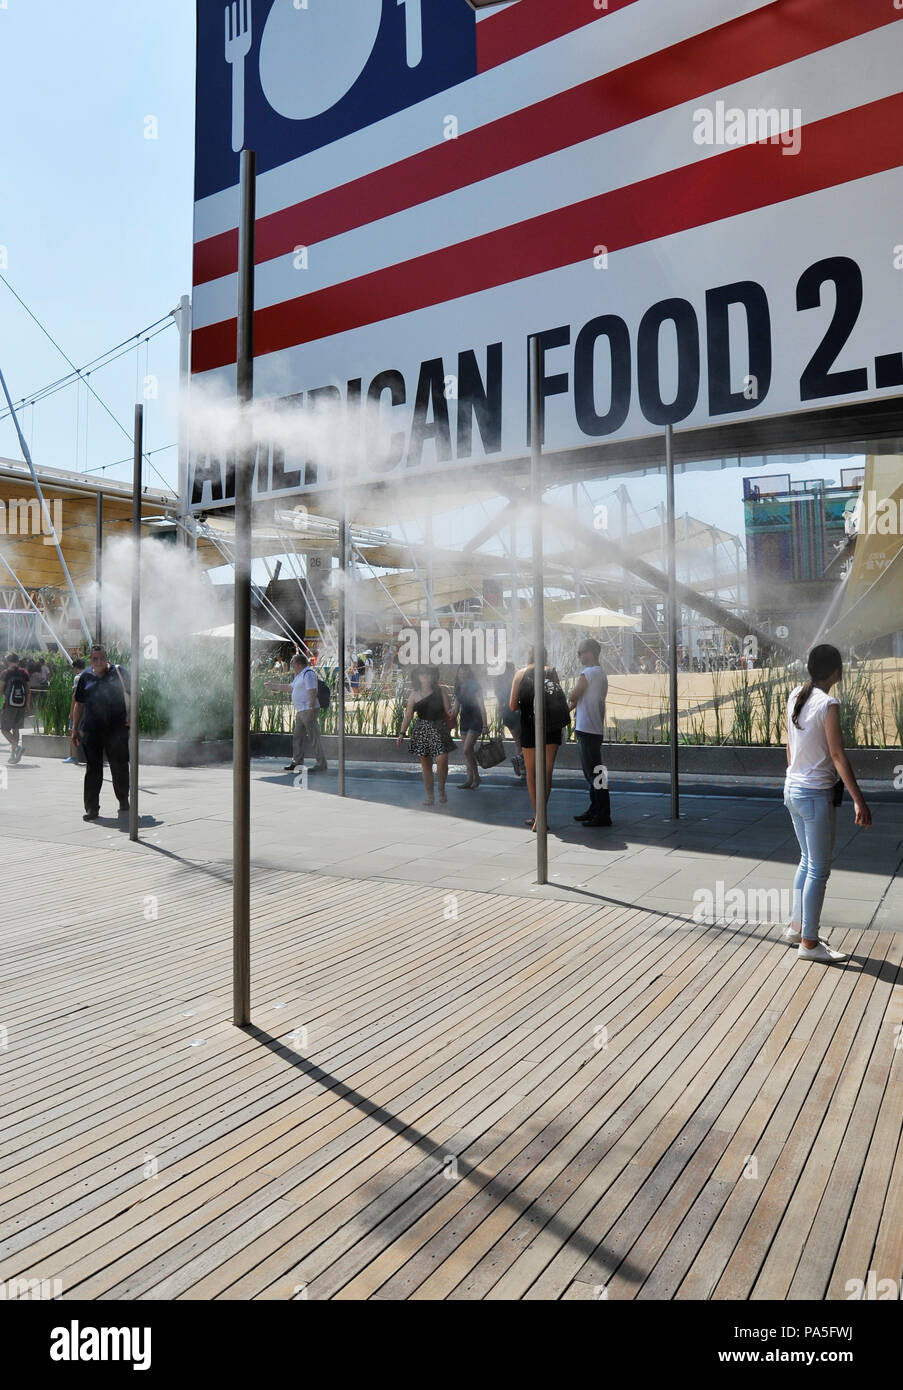 MILAN, ITALY – 06 30 2015:  An example of the use of vaporized water jets, used to refresh people during the hottest hours of the day in visiting plac - Stock Image